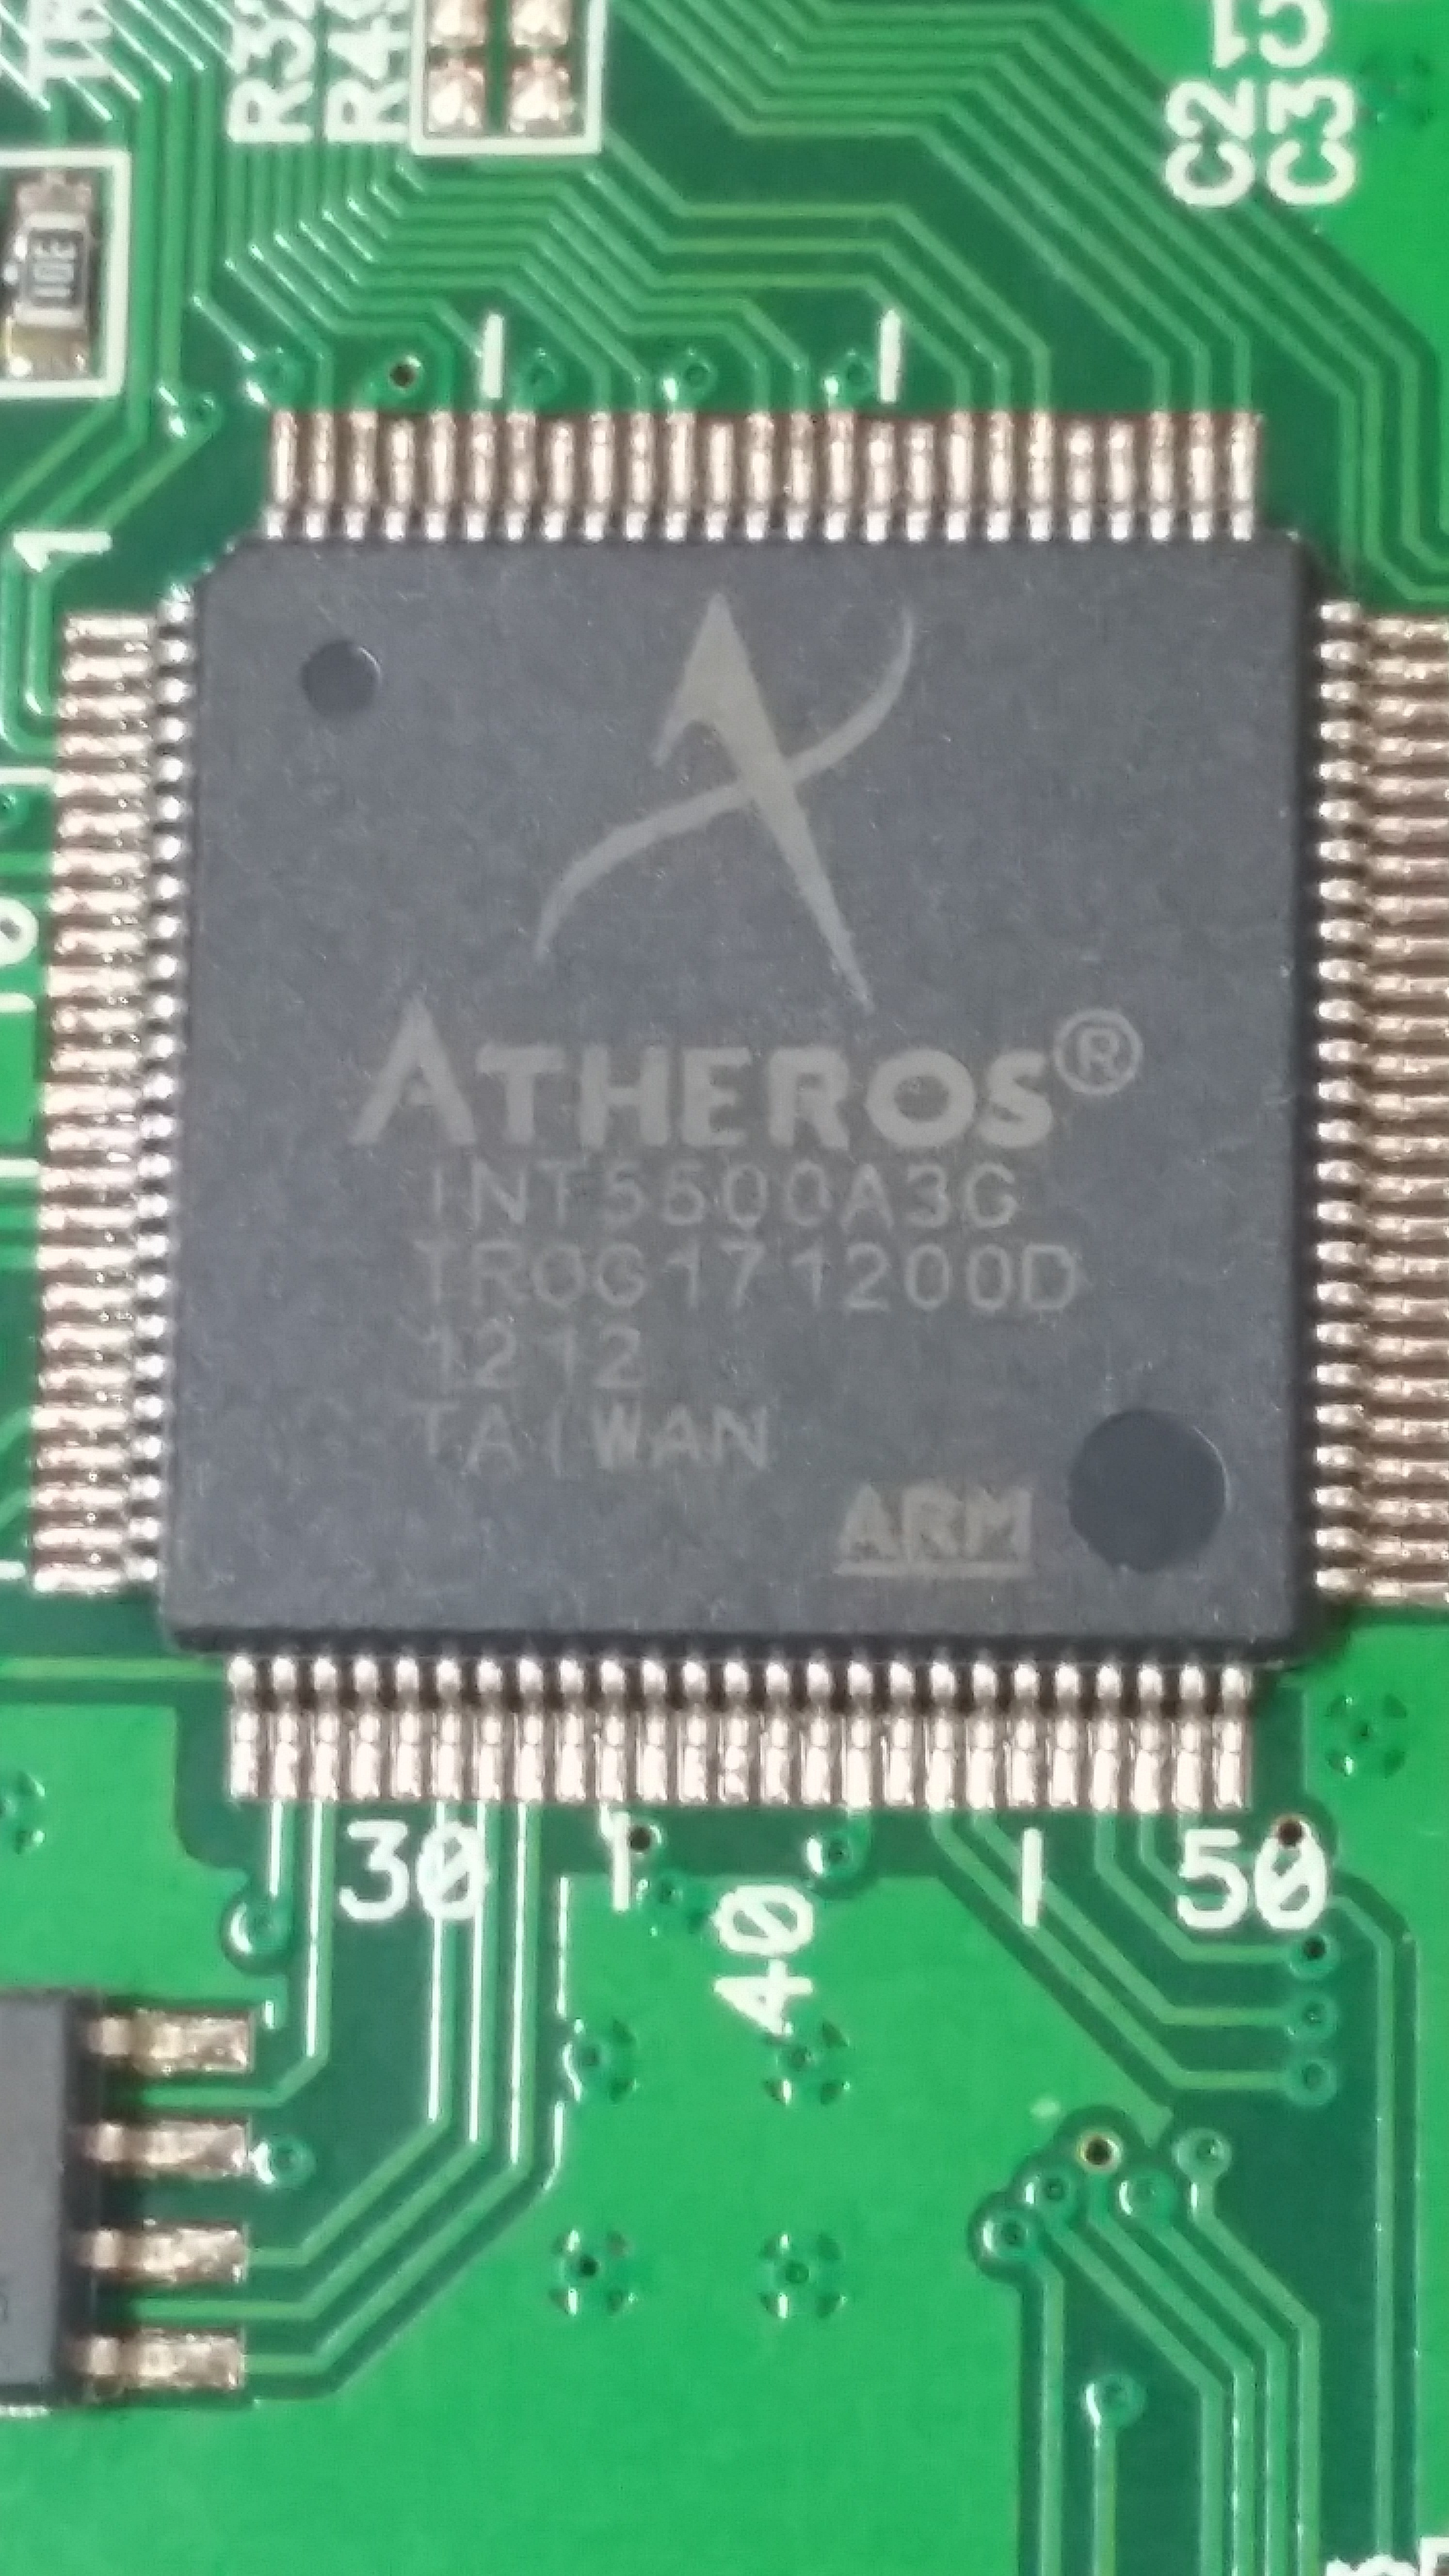 ATHEROS 5600 DRIVERS WINDOWS 7